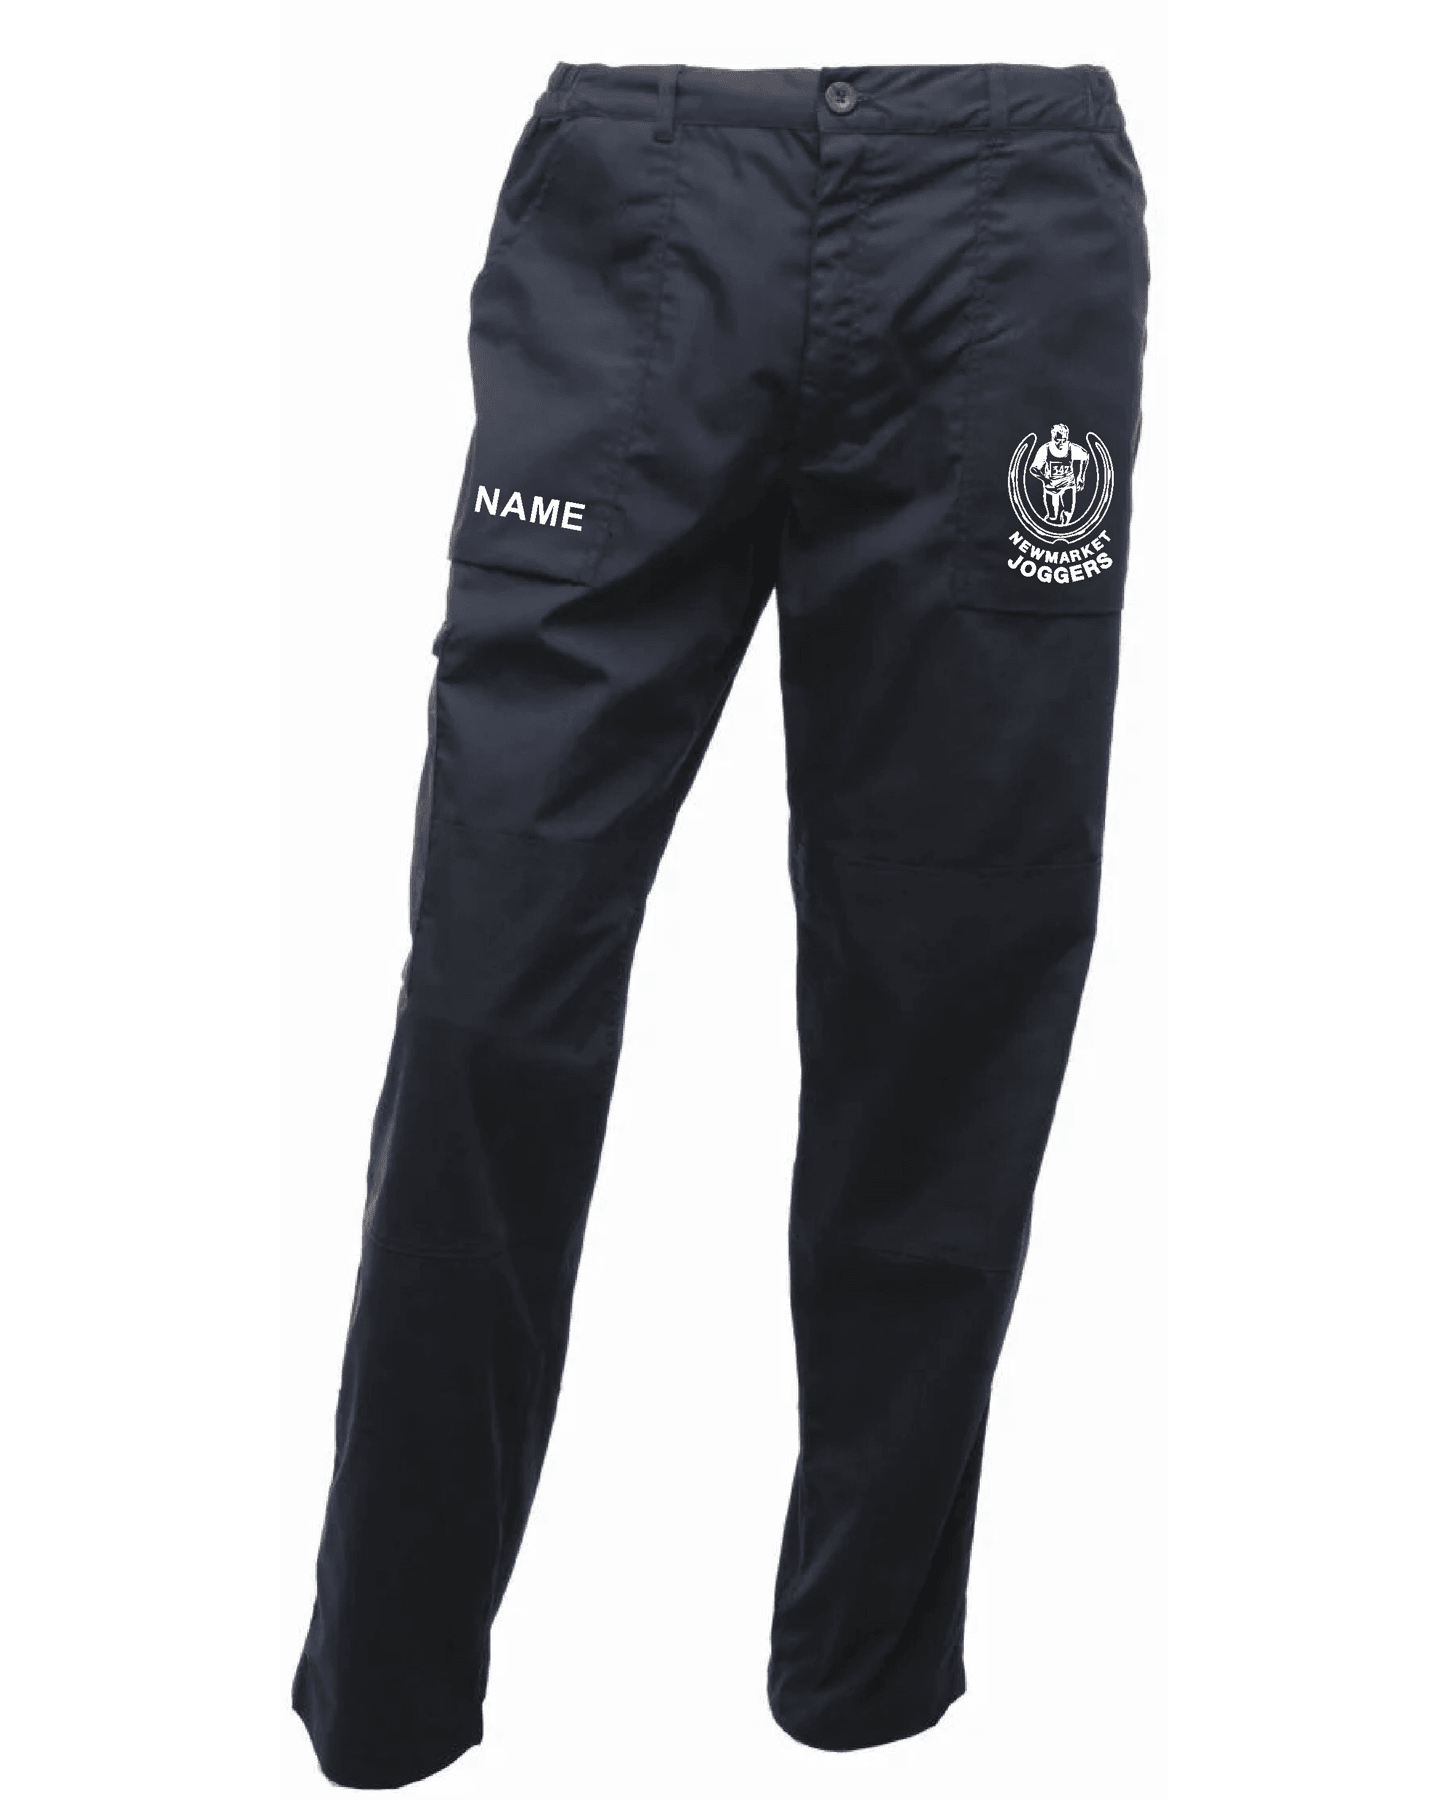 Newmarket Joggers – Water Repellent Trousers (Ladies)